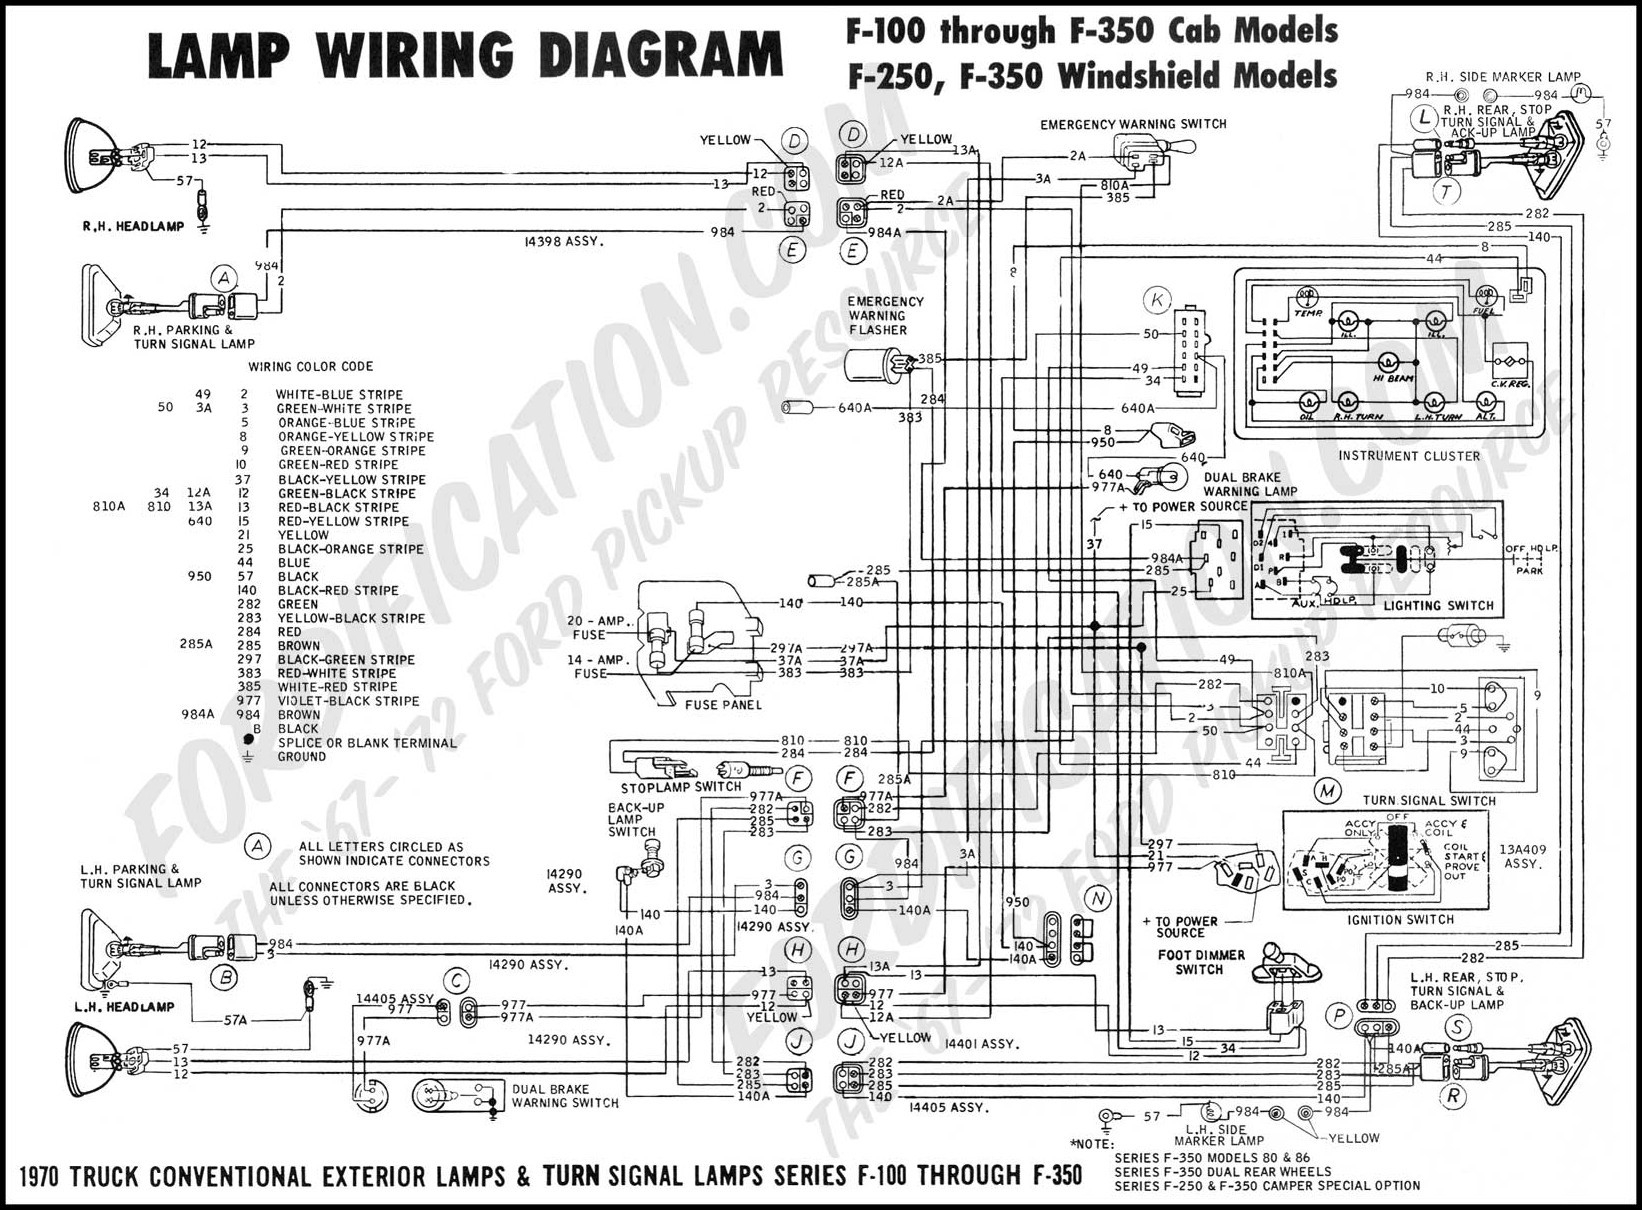 D16Z6 Wiring Diagram With D16Y8 Harness At D16Z6 Wiring Harness - Pioneer Avh X1500Dvd Wiring Diagram